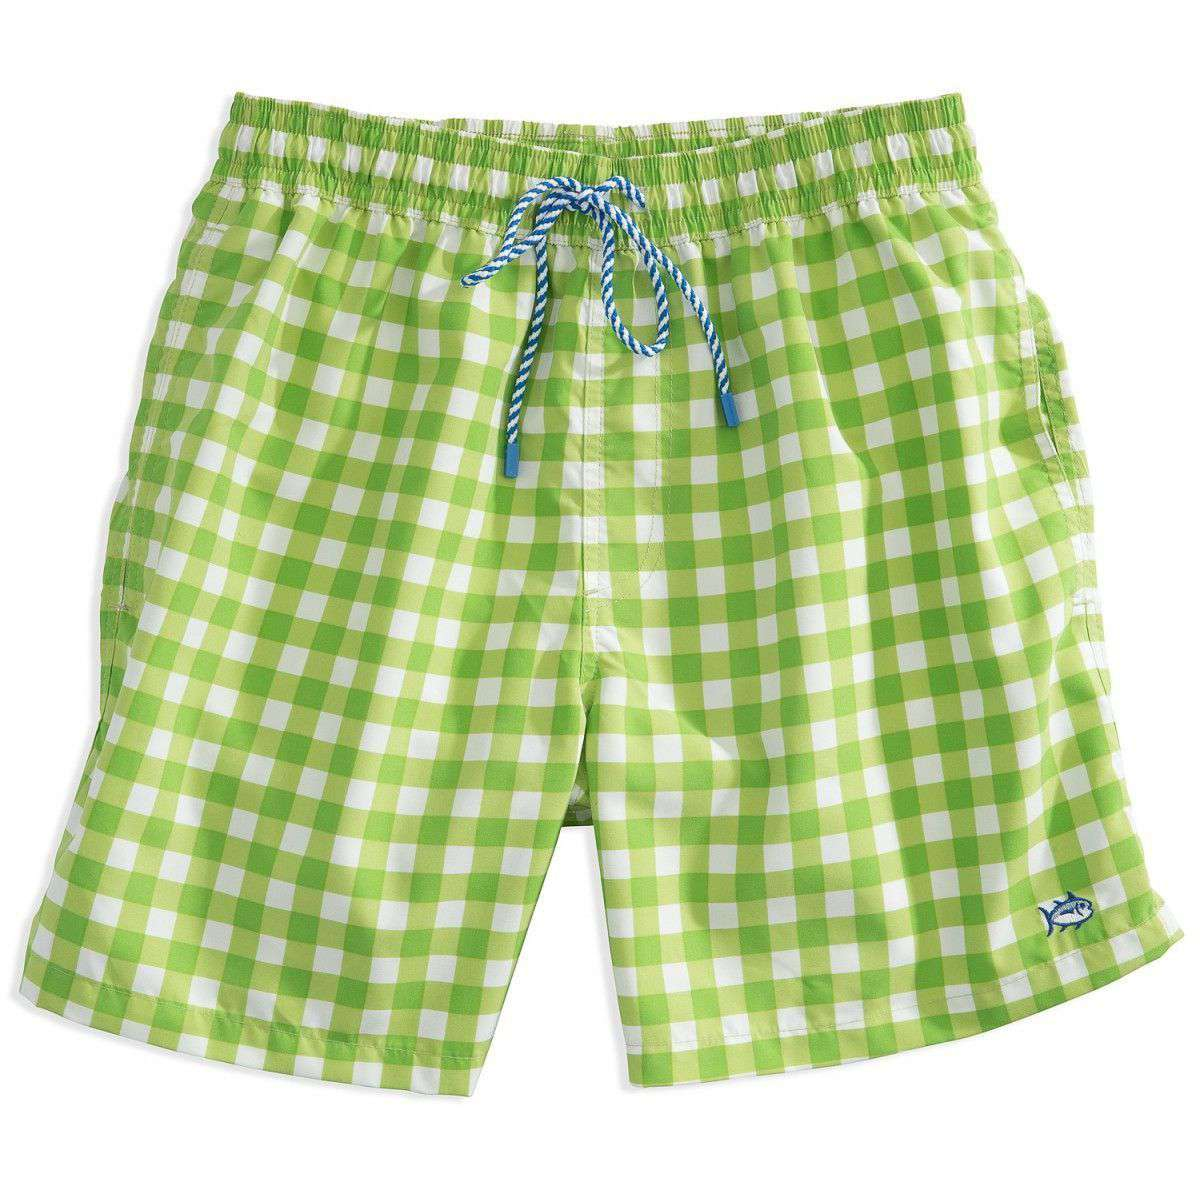 517554c2ea Southern Tide Gingham Swim Trunks in Green – Country Club Prep